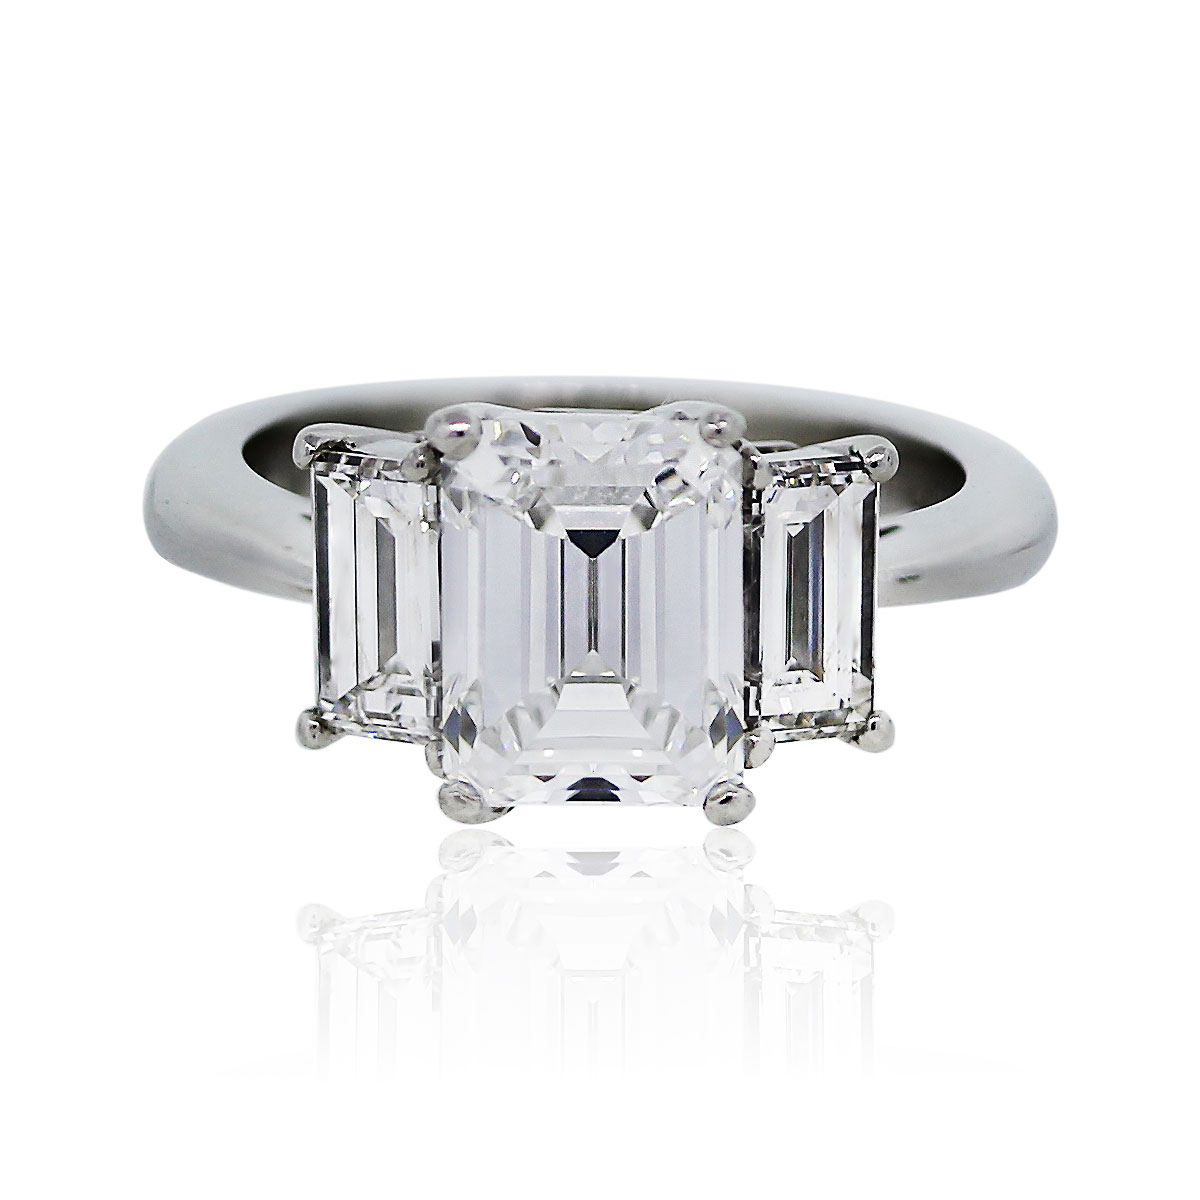 carat emerald cut diamond gia certified engagement ring. Black Bedroom Furniture Sets. Home Design Ideas